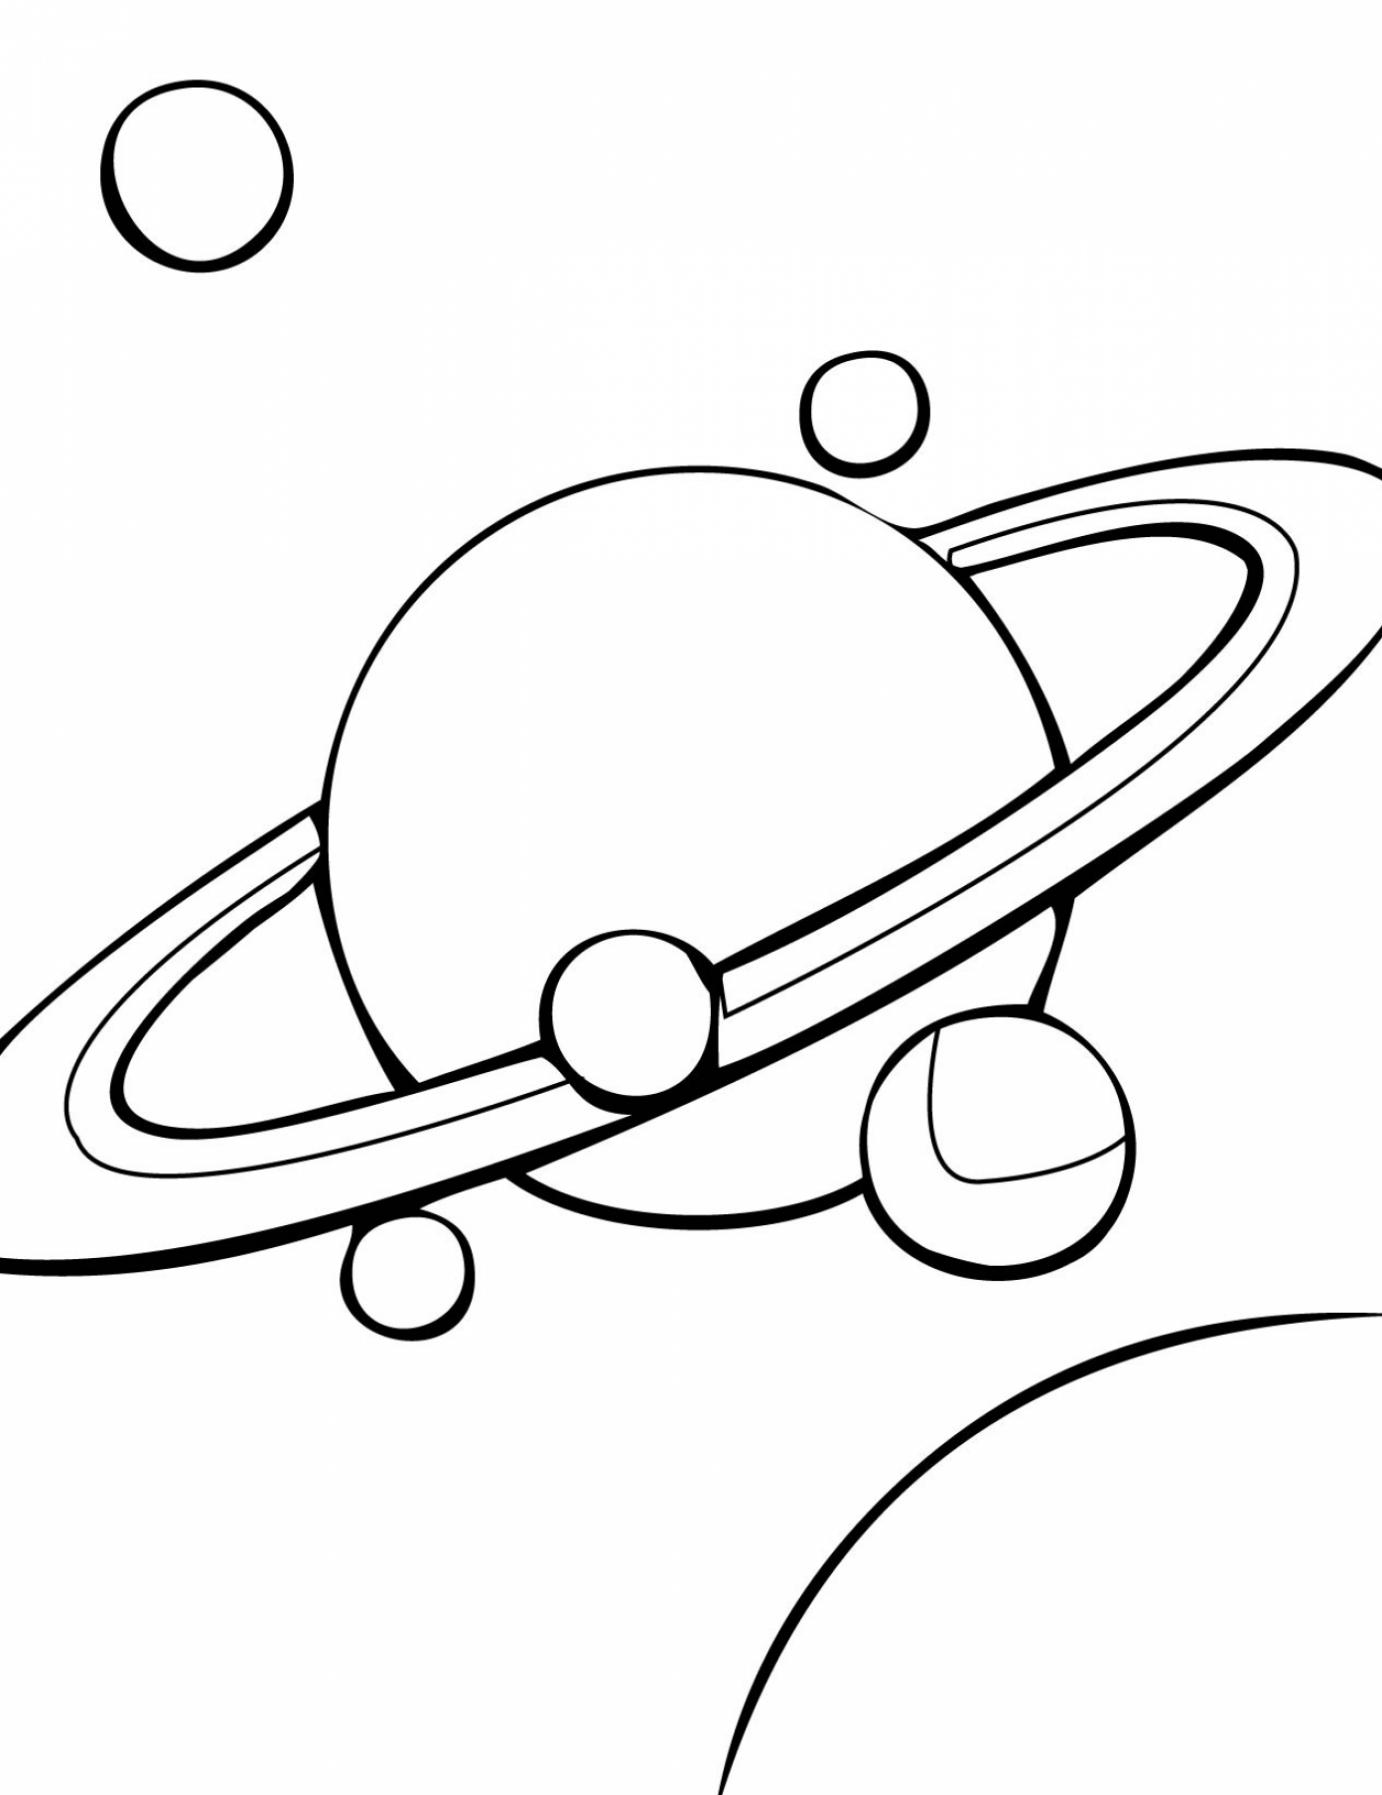 saturn colouring page saturn planet coloring page free printable coloring pages colouring saturn page